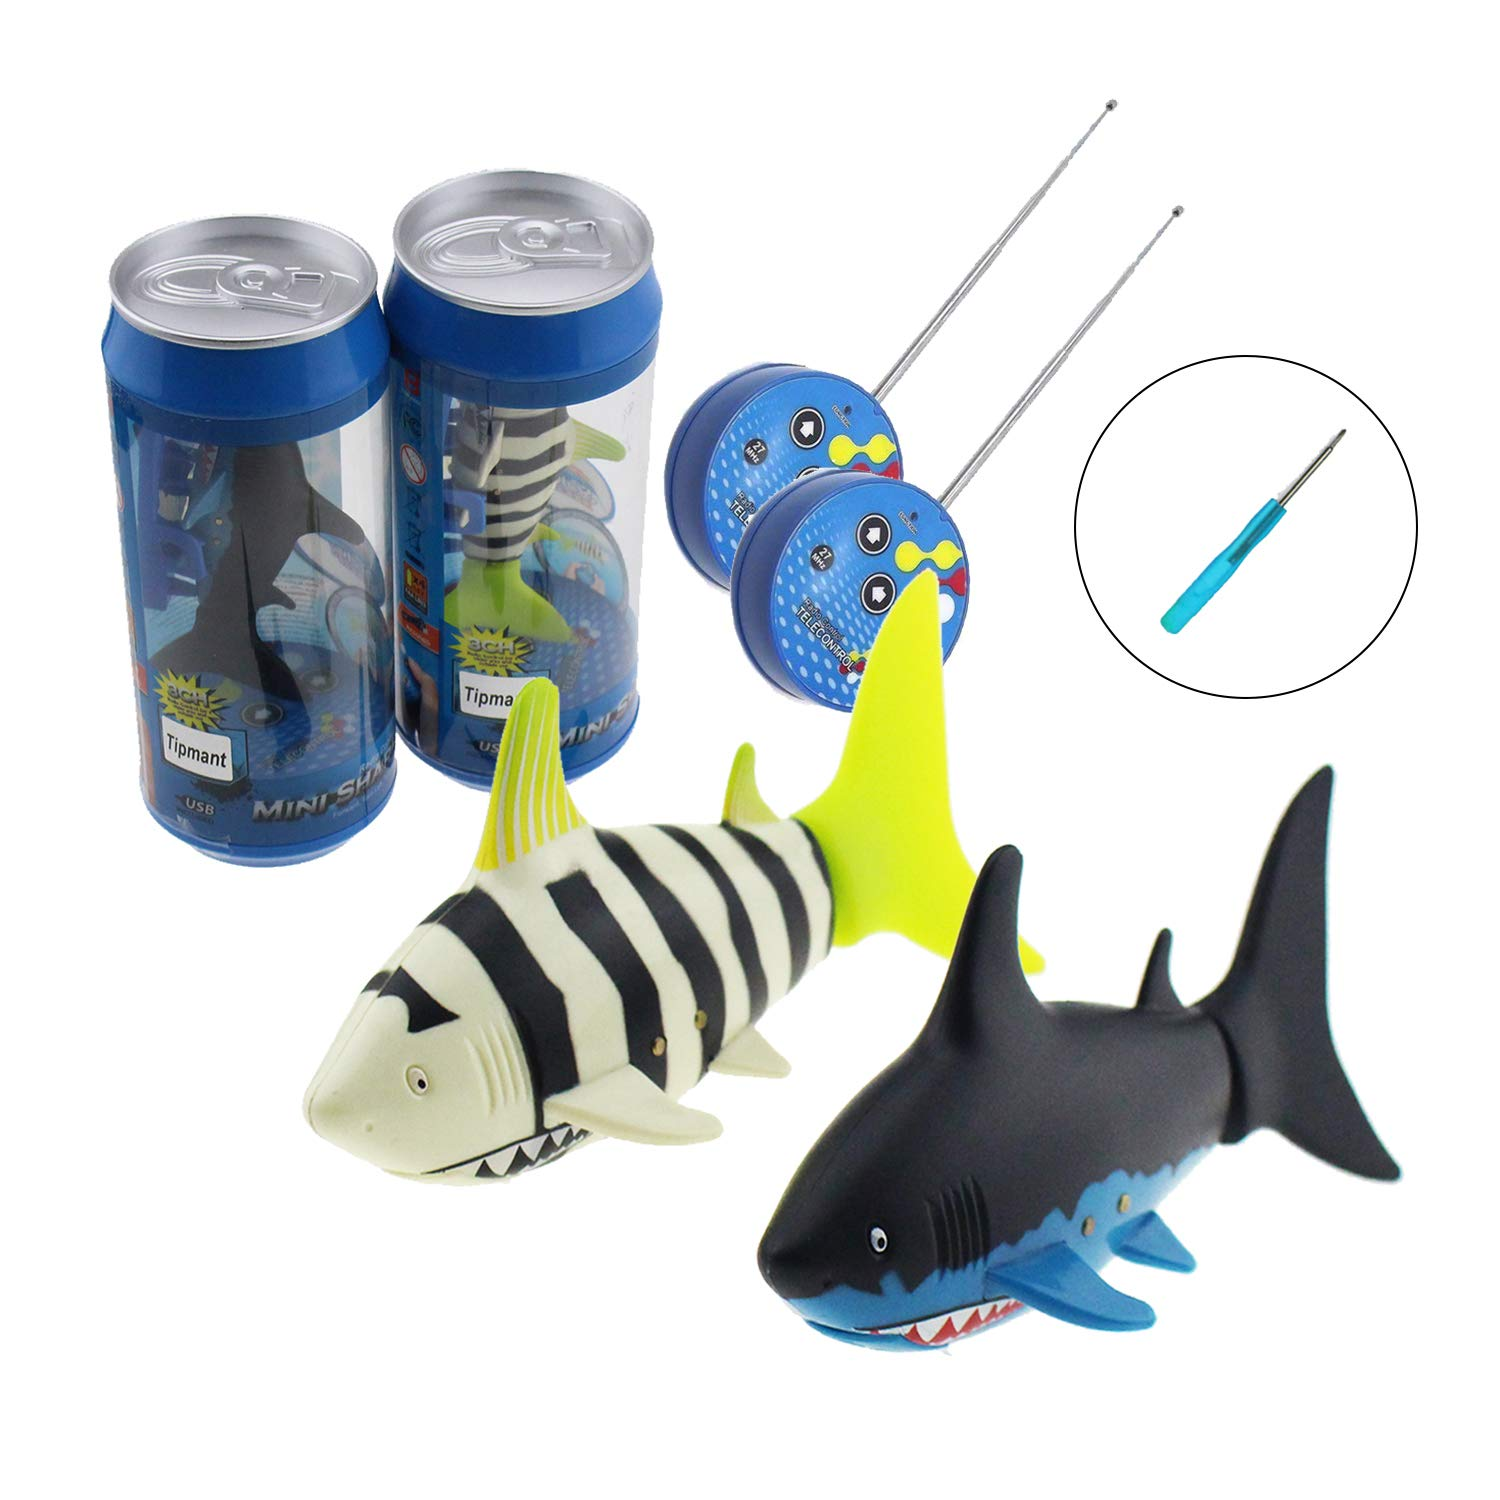 2 Pack Tipmant Mini RC Fish Shark Radio Remote Control Boat Ships & Submarine Swim in Water Kids Electric Toy (2 Fish + 1 Screwdriver)